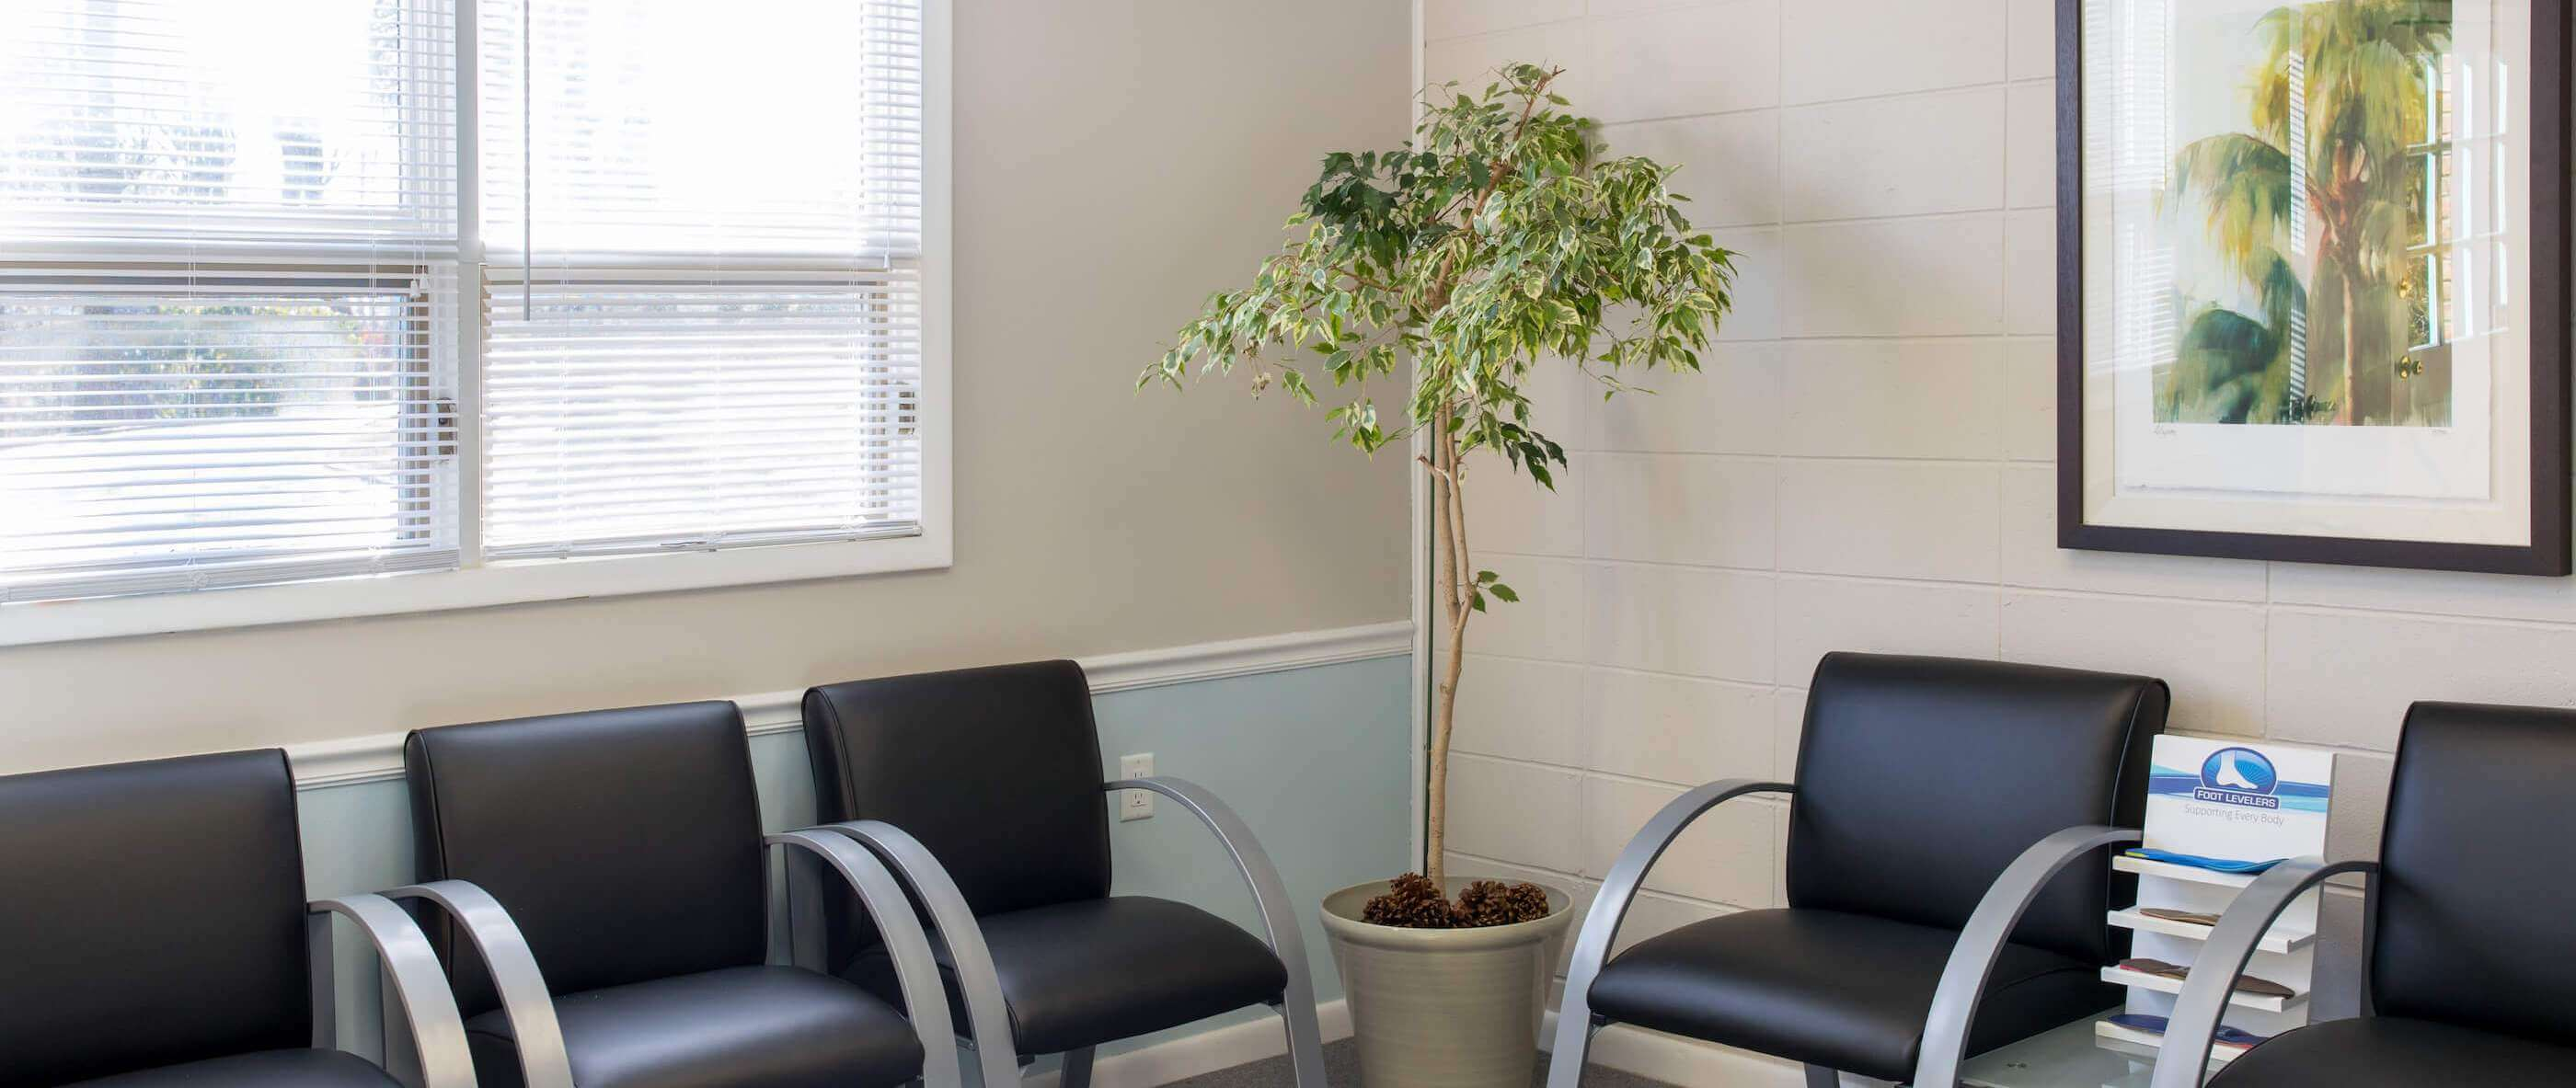 Chester Chiropractic Center, Chester NJ, Morris County waiting room